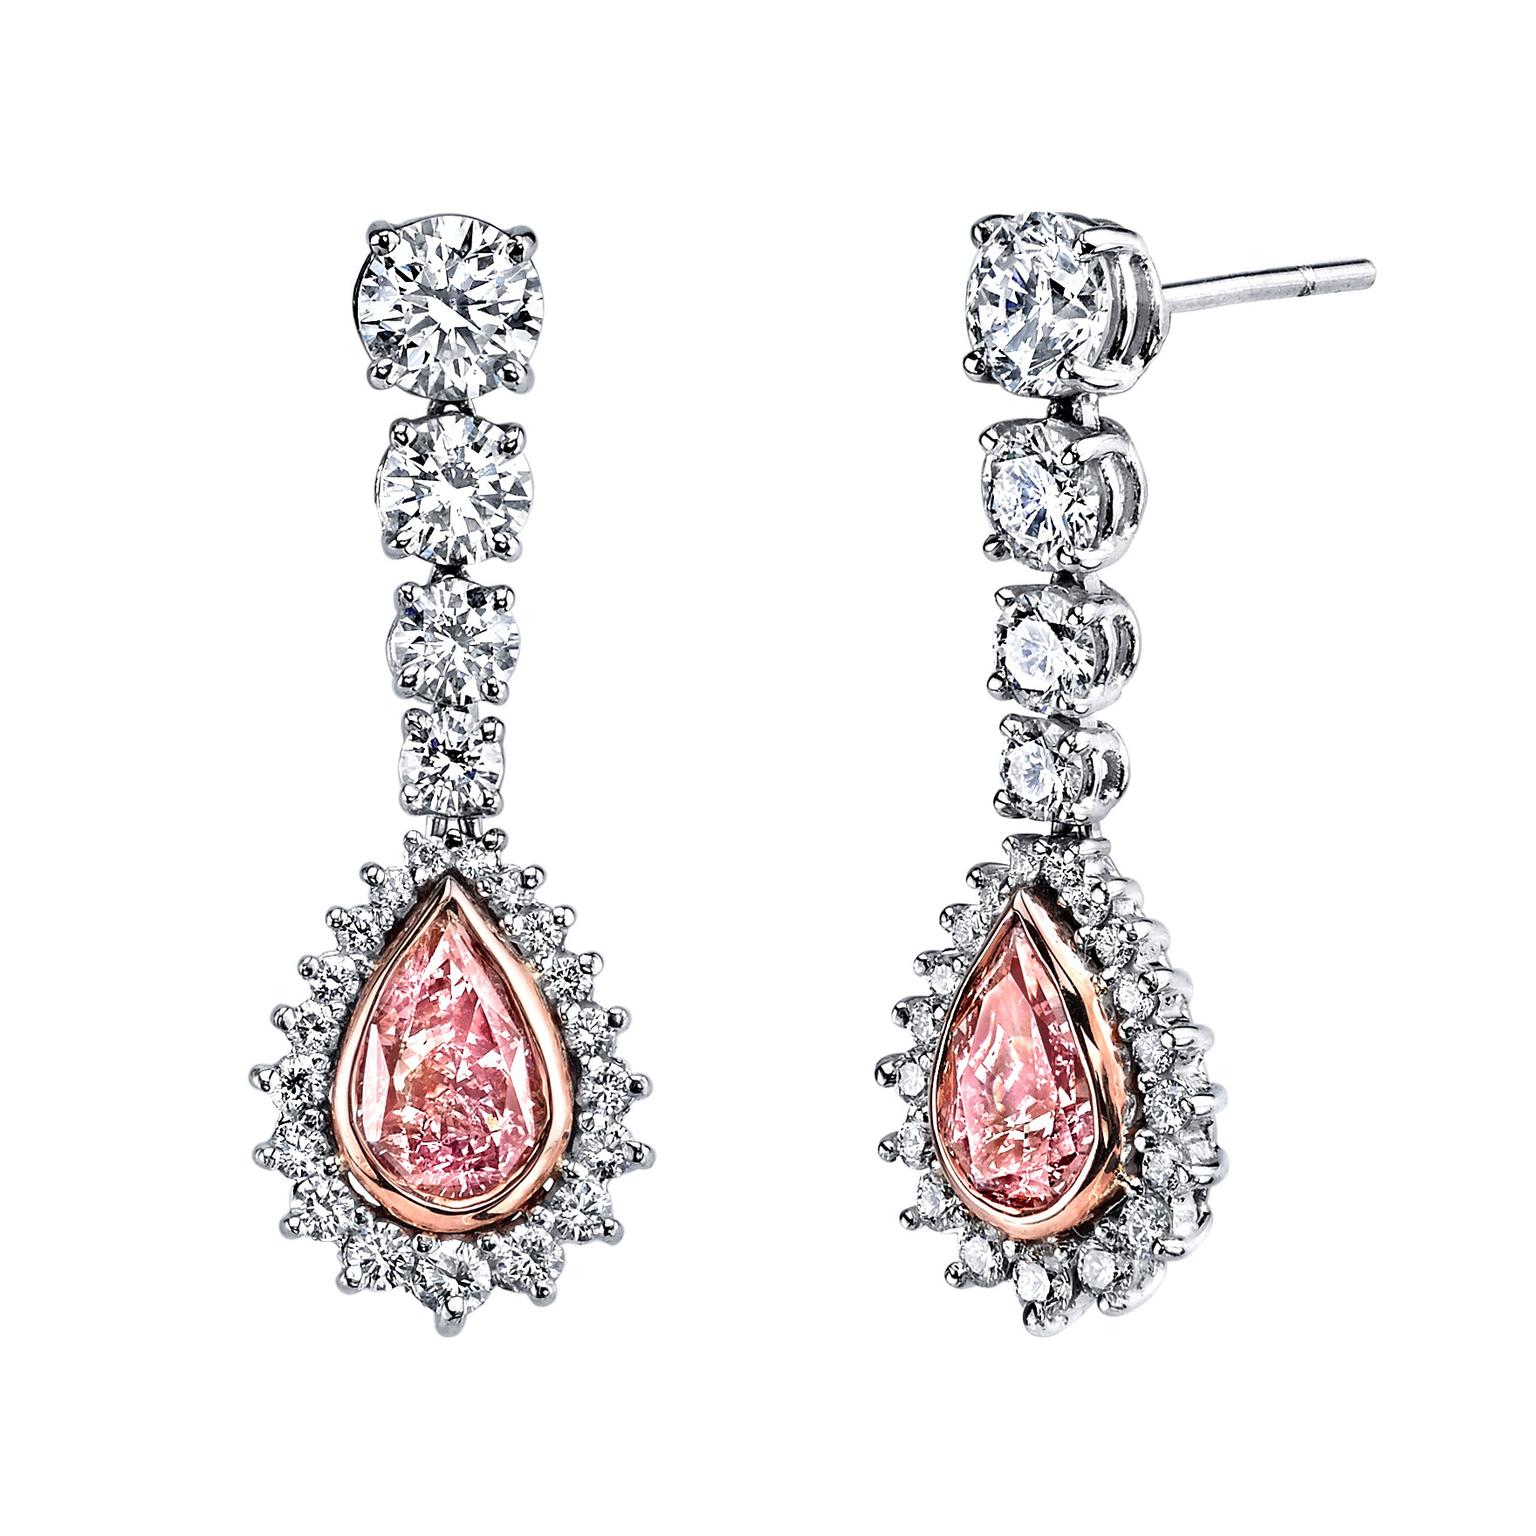 Harry Kotlar pink diamond drop earrings